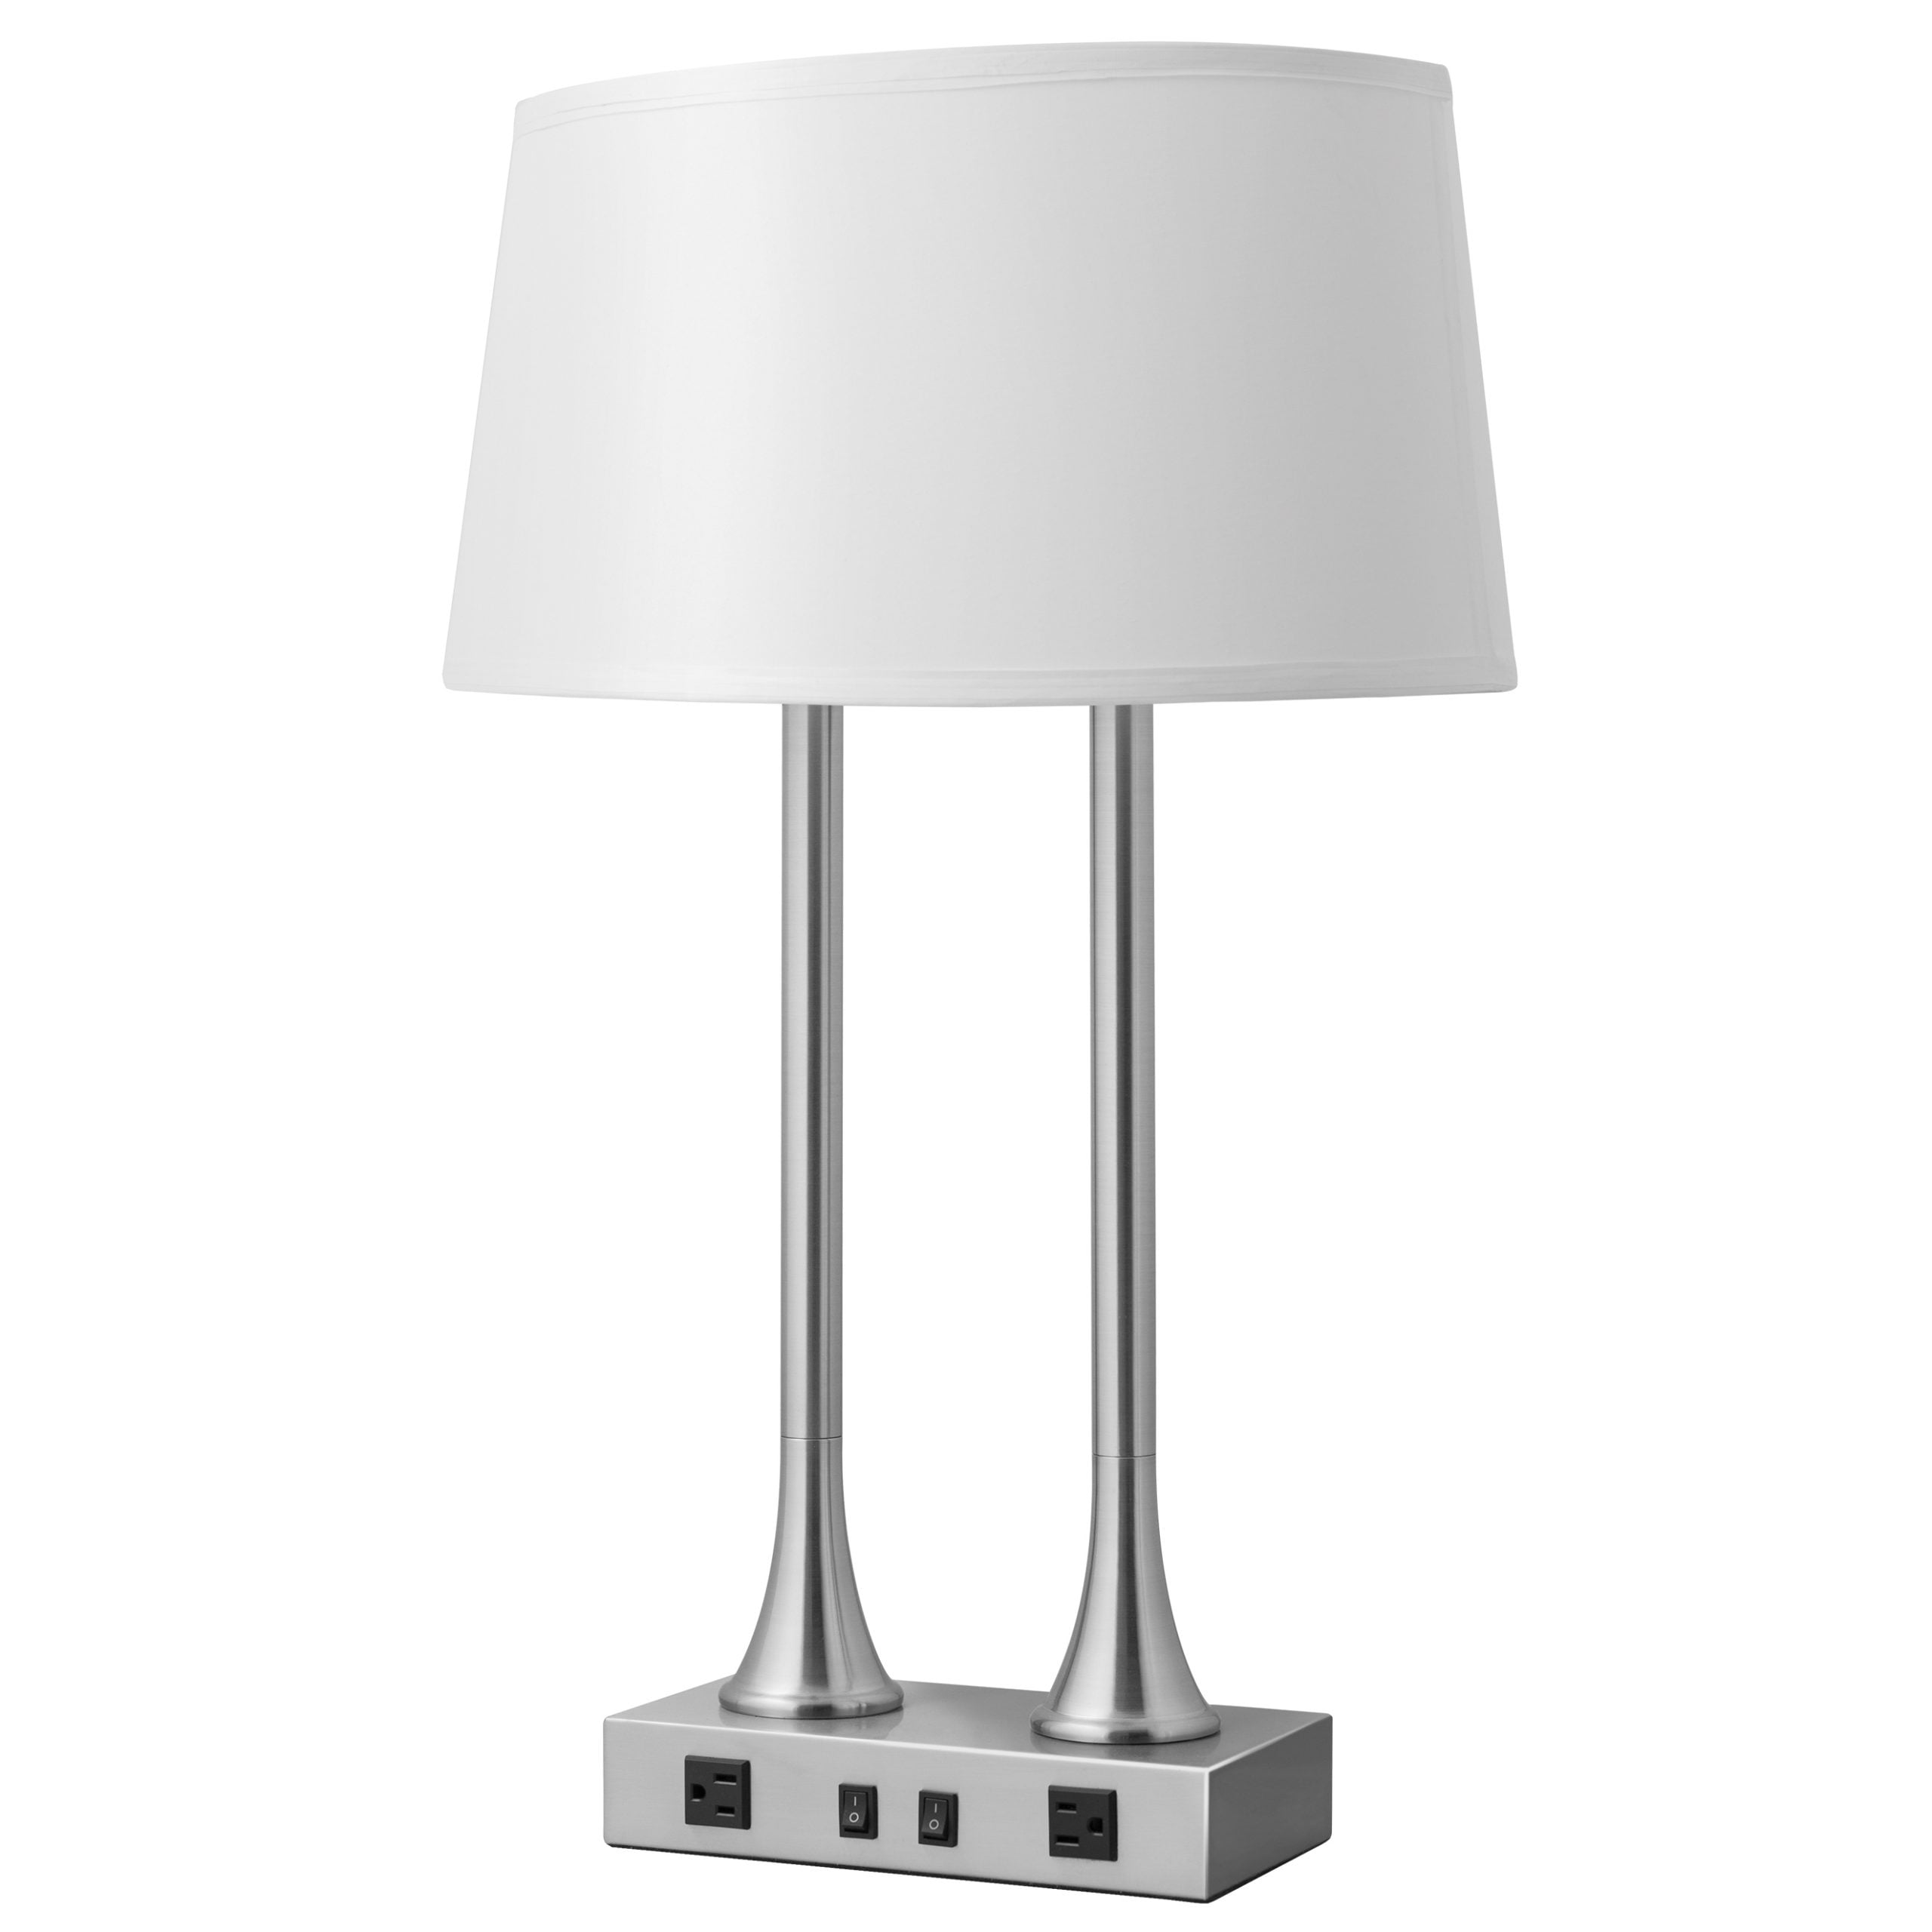 Lush Vert Desk Lamp with 2 Outlets